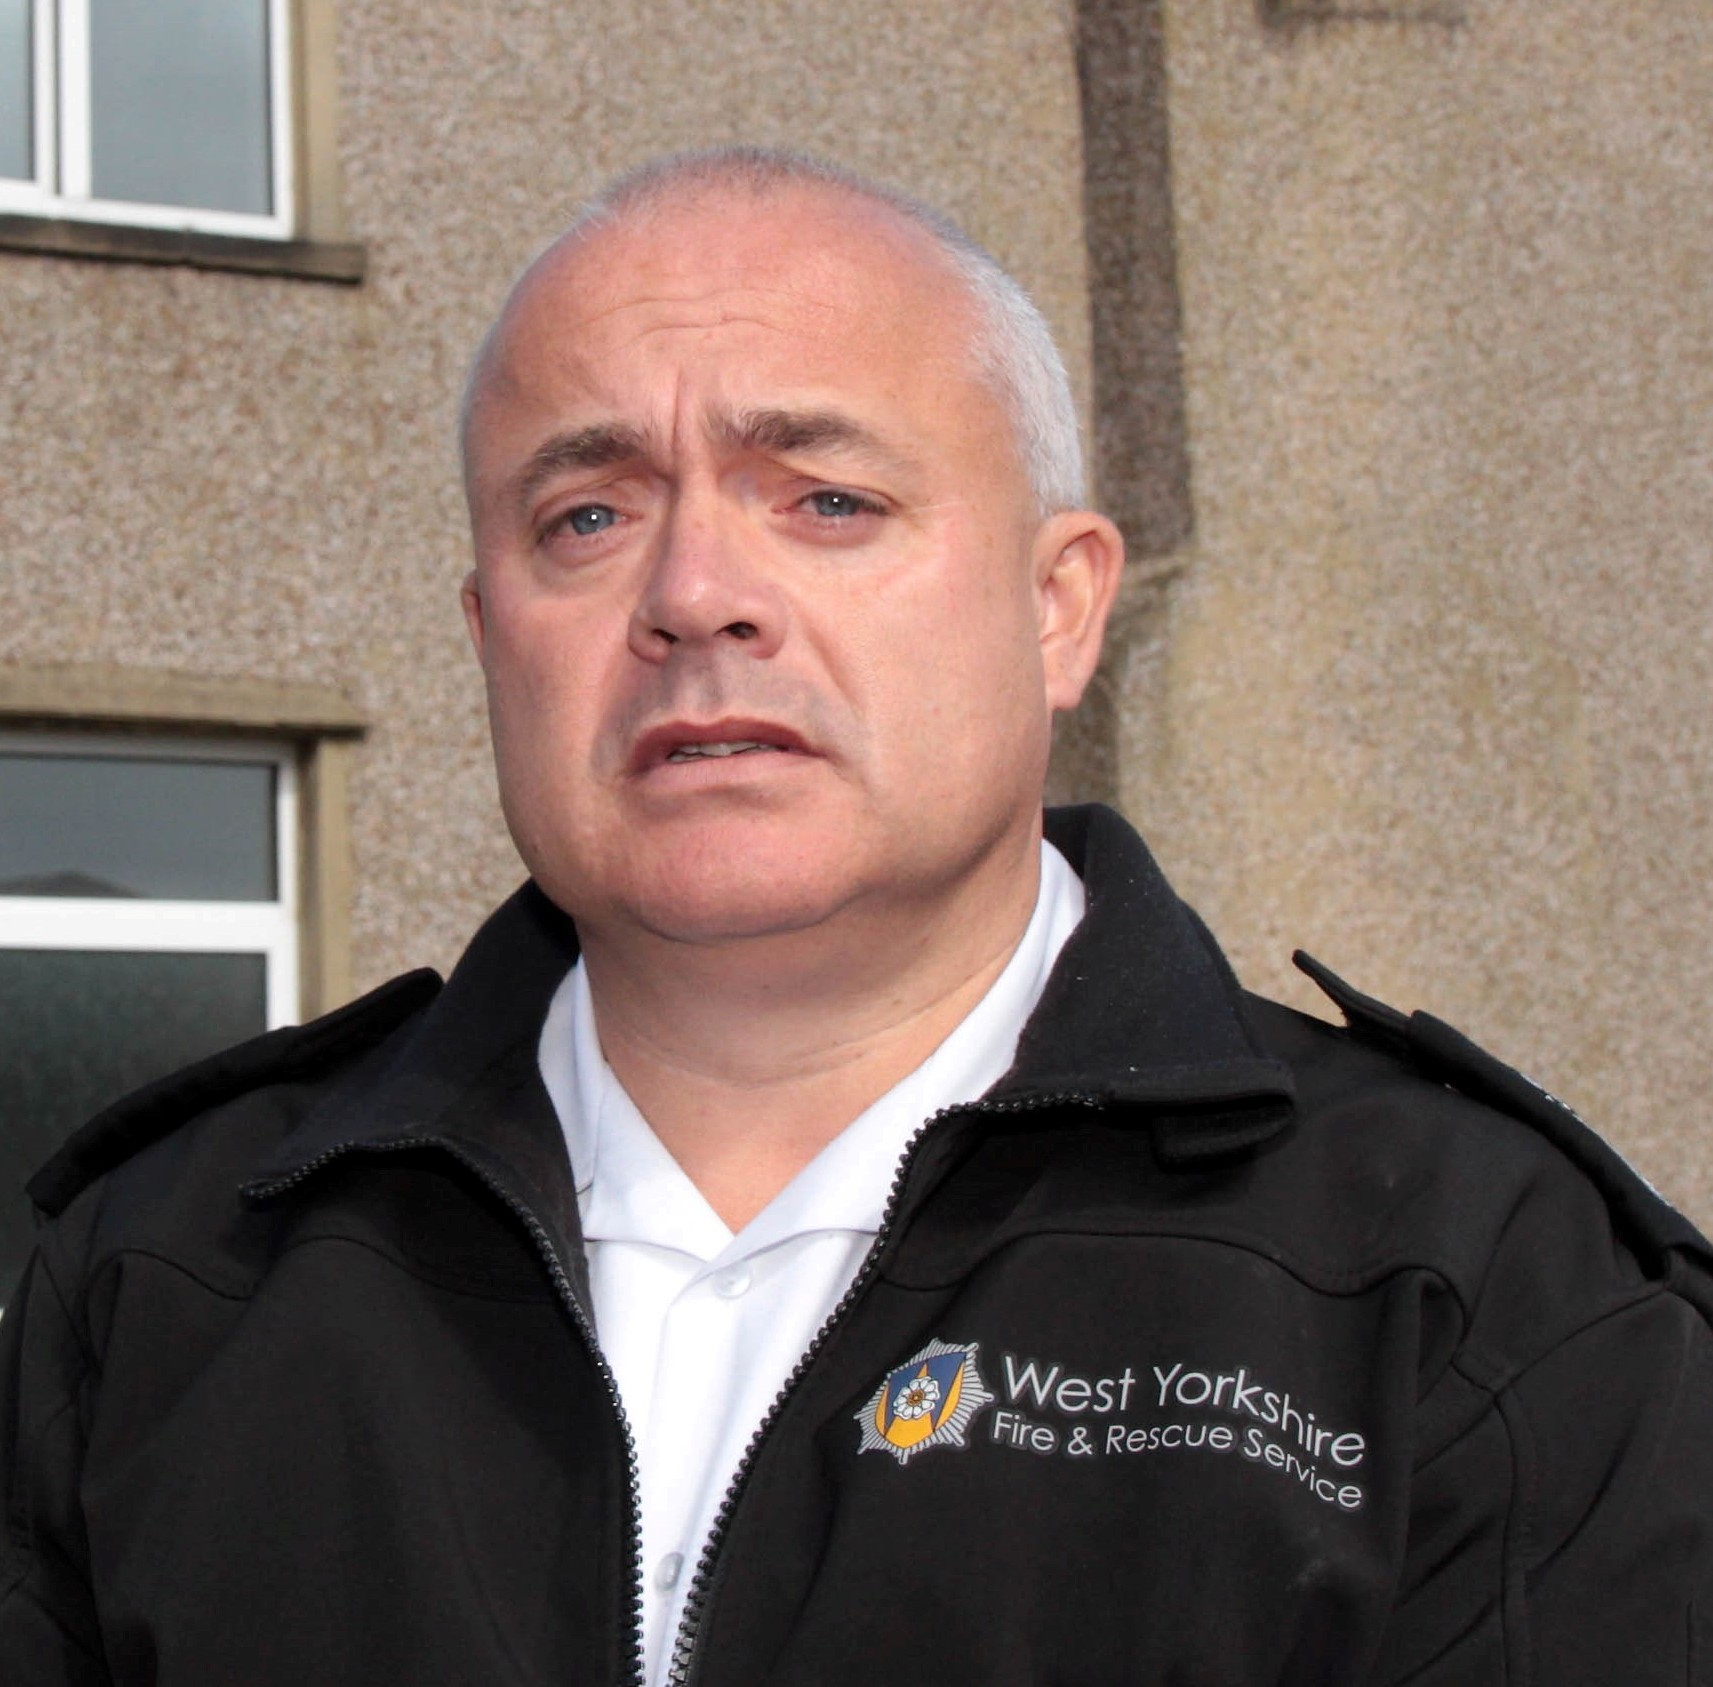 Assistant chief officer Dave Walton of West Yorkshire Fire and Rescue service